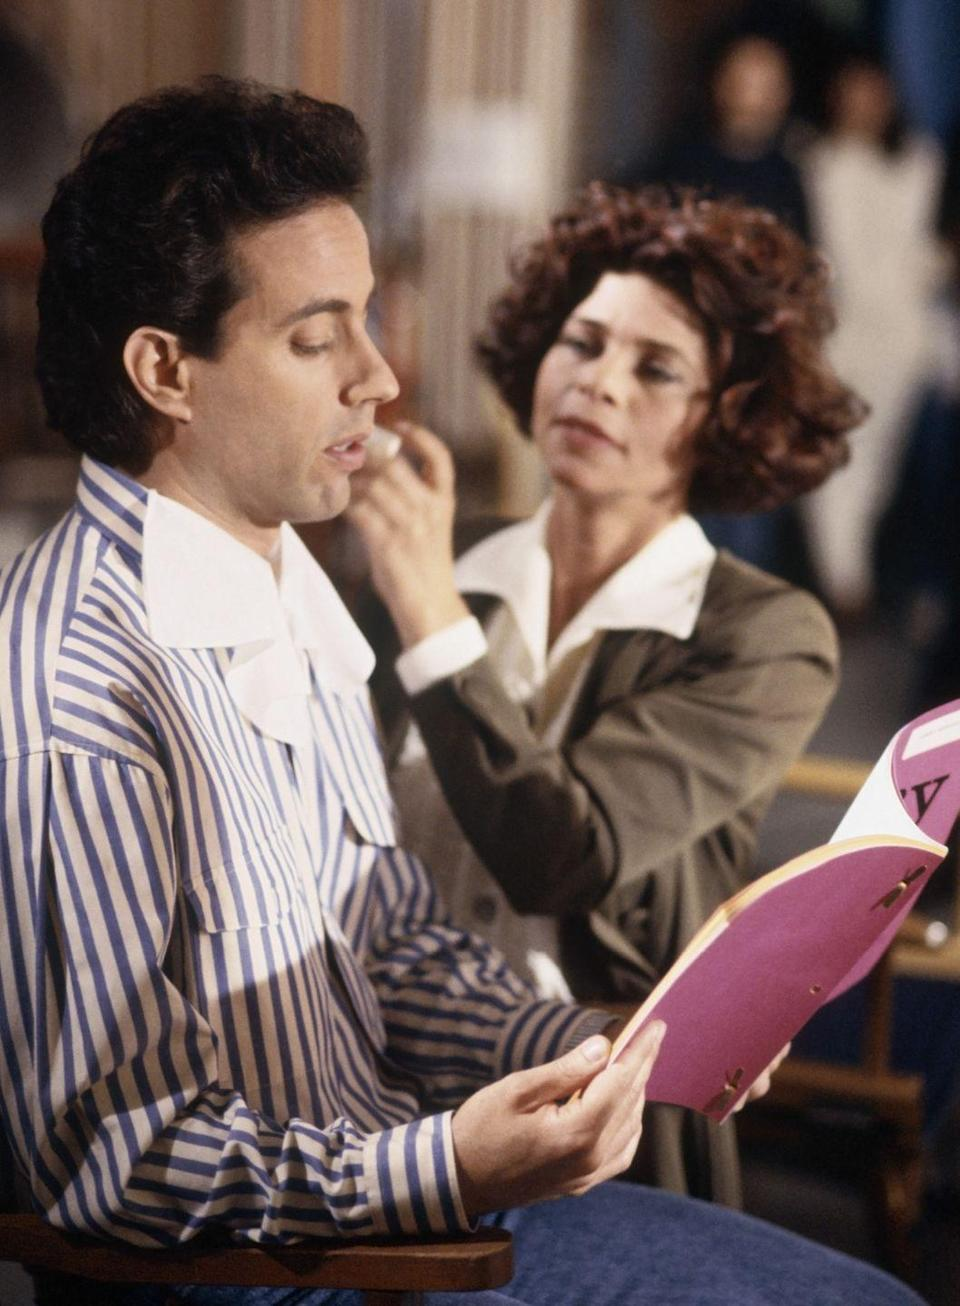 <p>Seinfeld prepares to tape an episode by reading through his lines in the hair and makeup chair. </p>